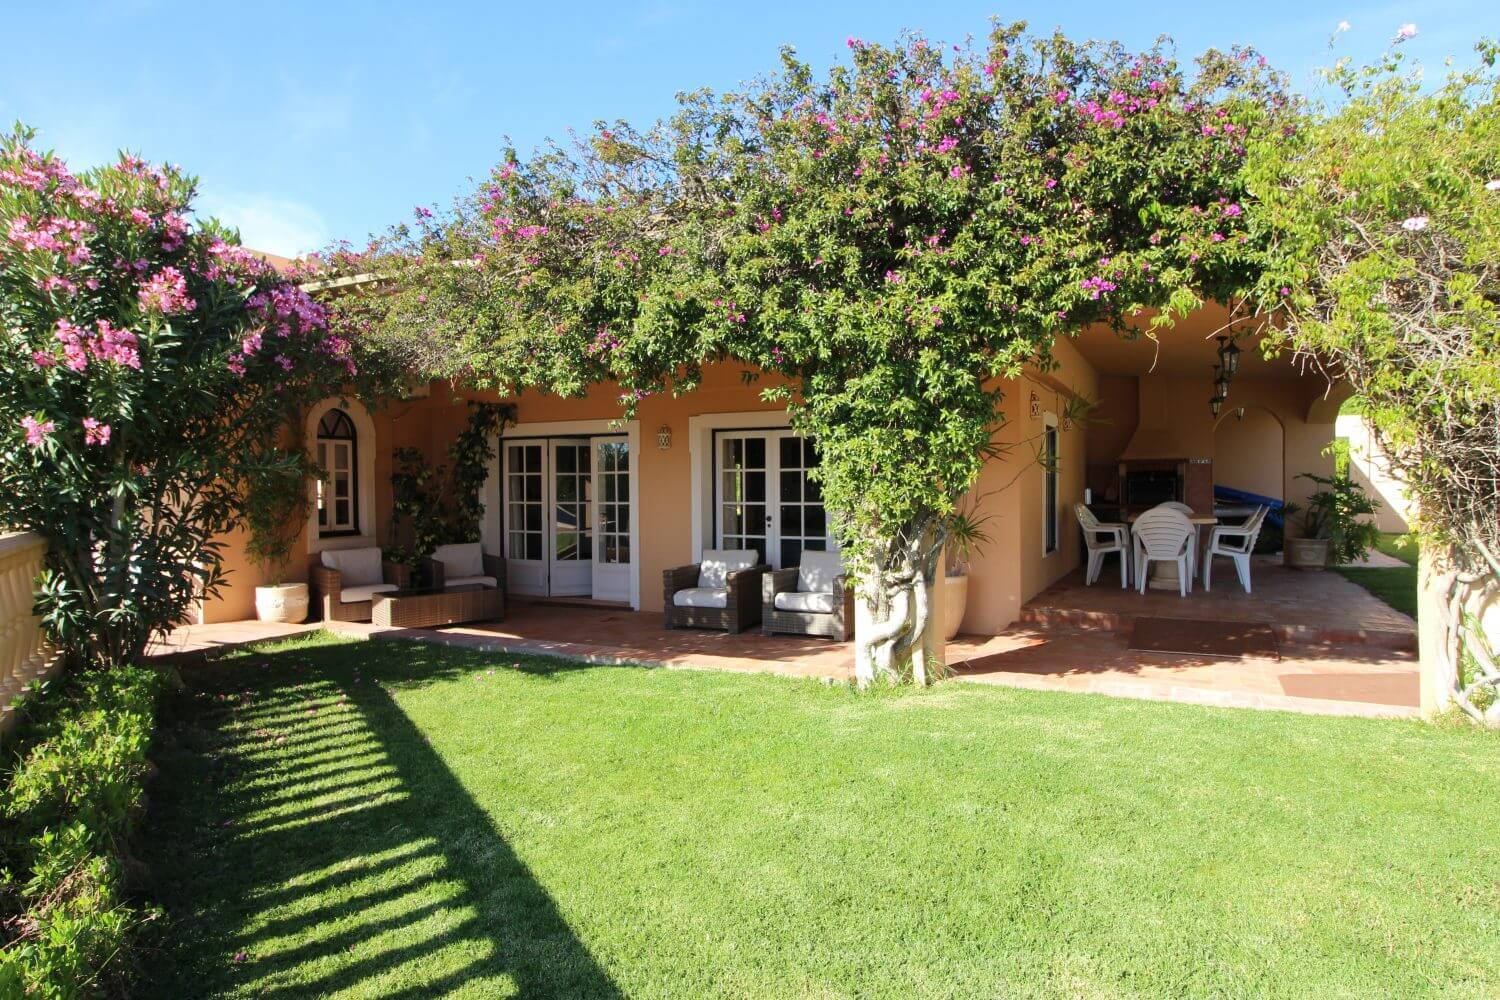 holiday villa for the disabled, accessible villa, algarve portugal